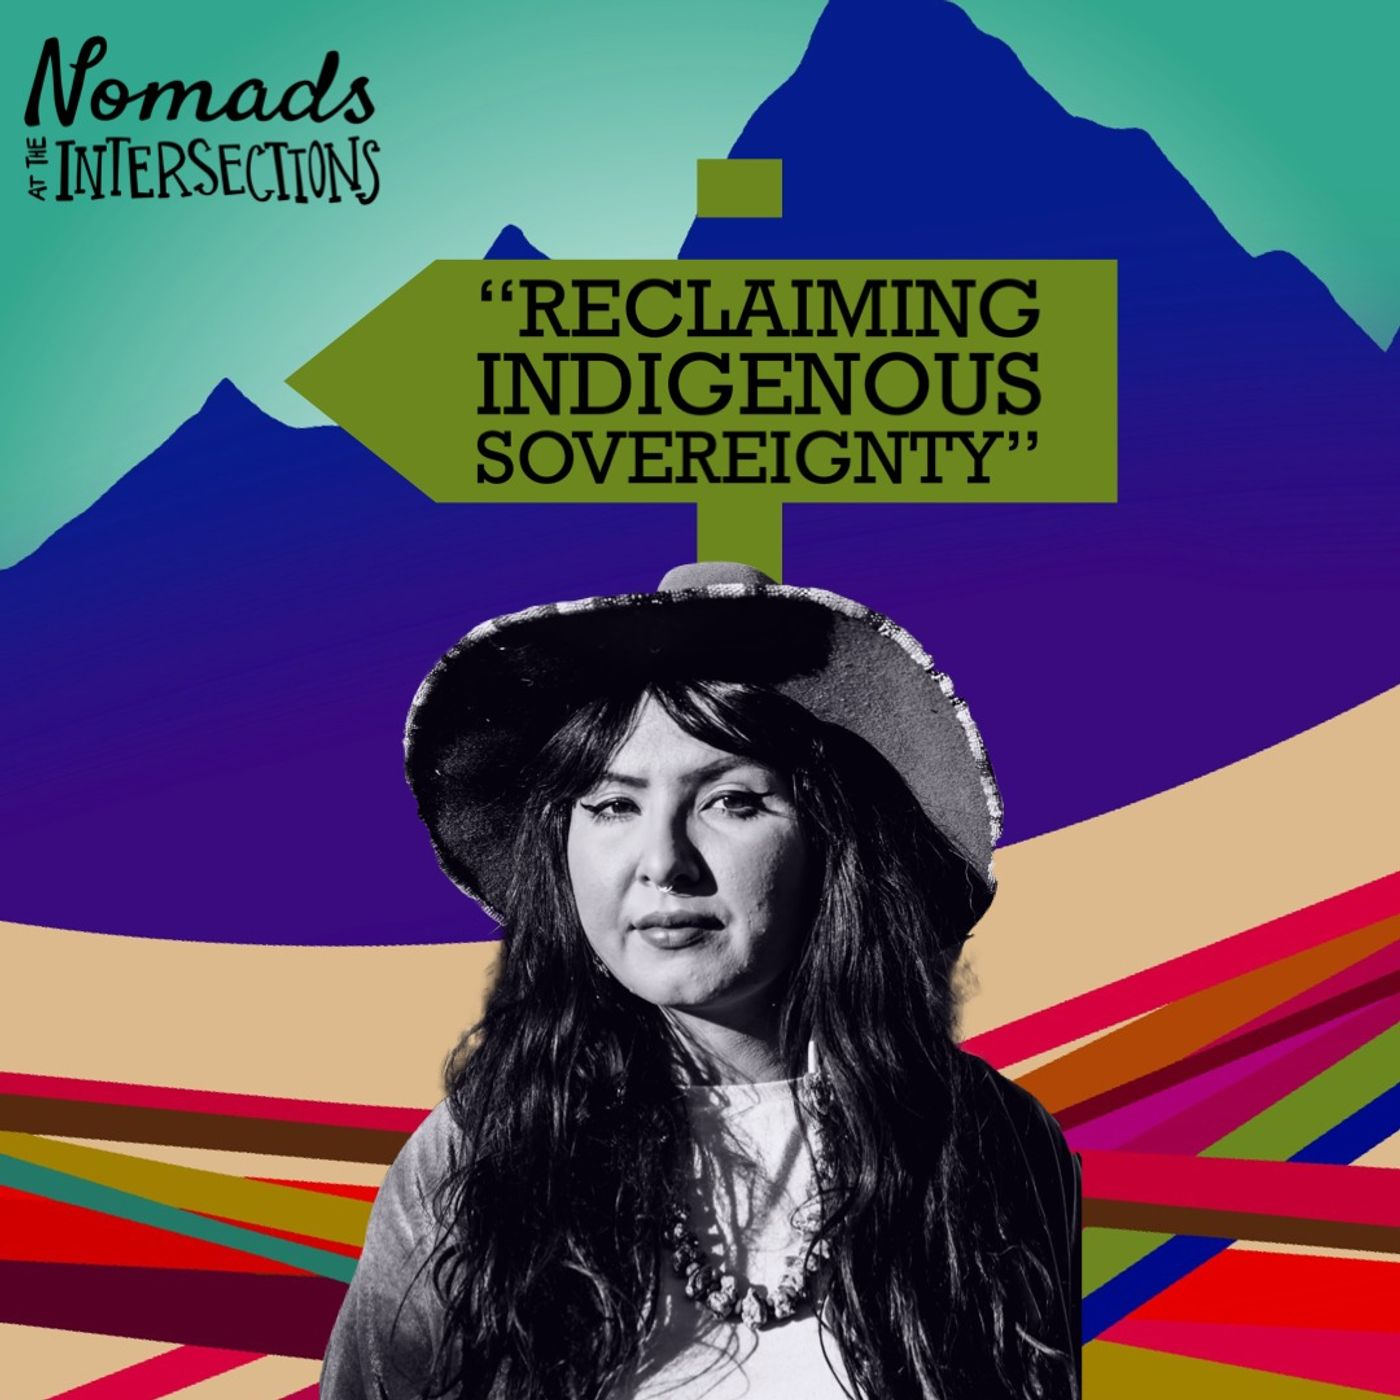 Reclaiming Indigenous Sovereignty